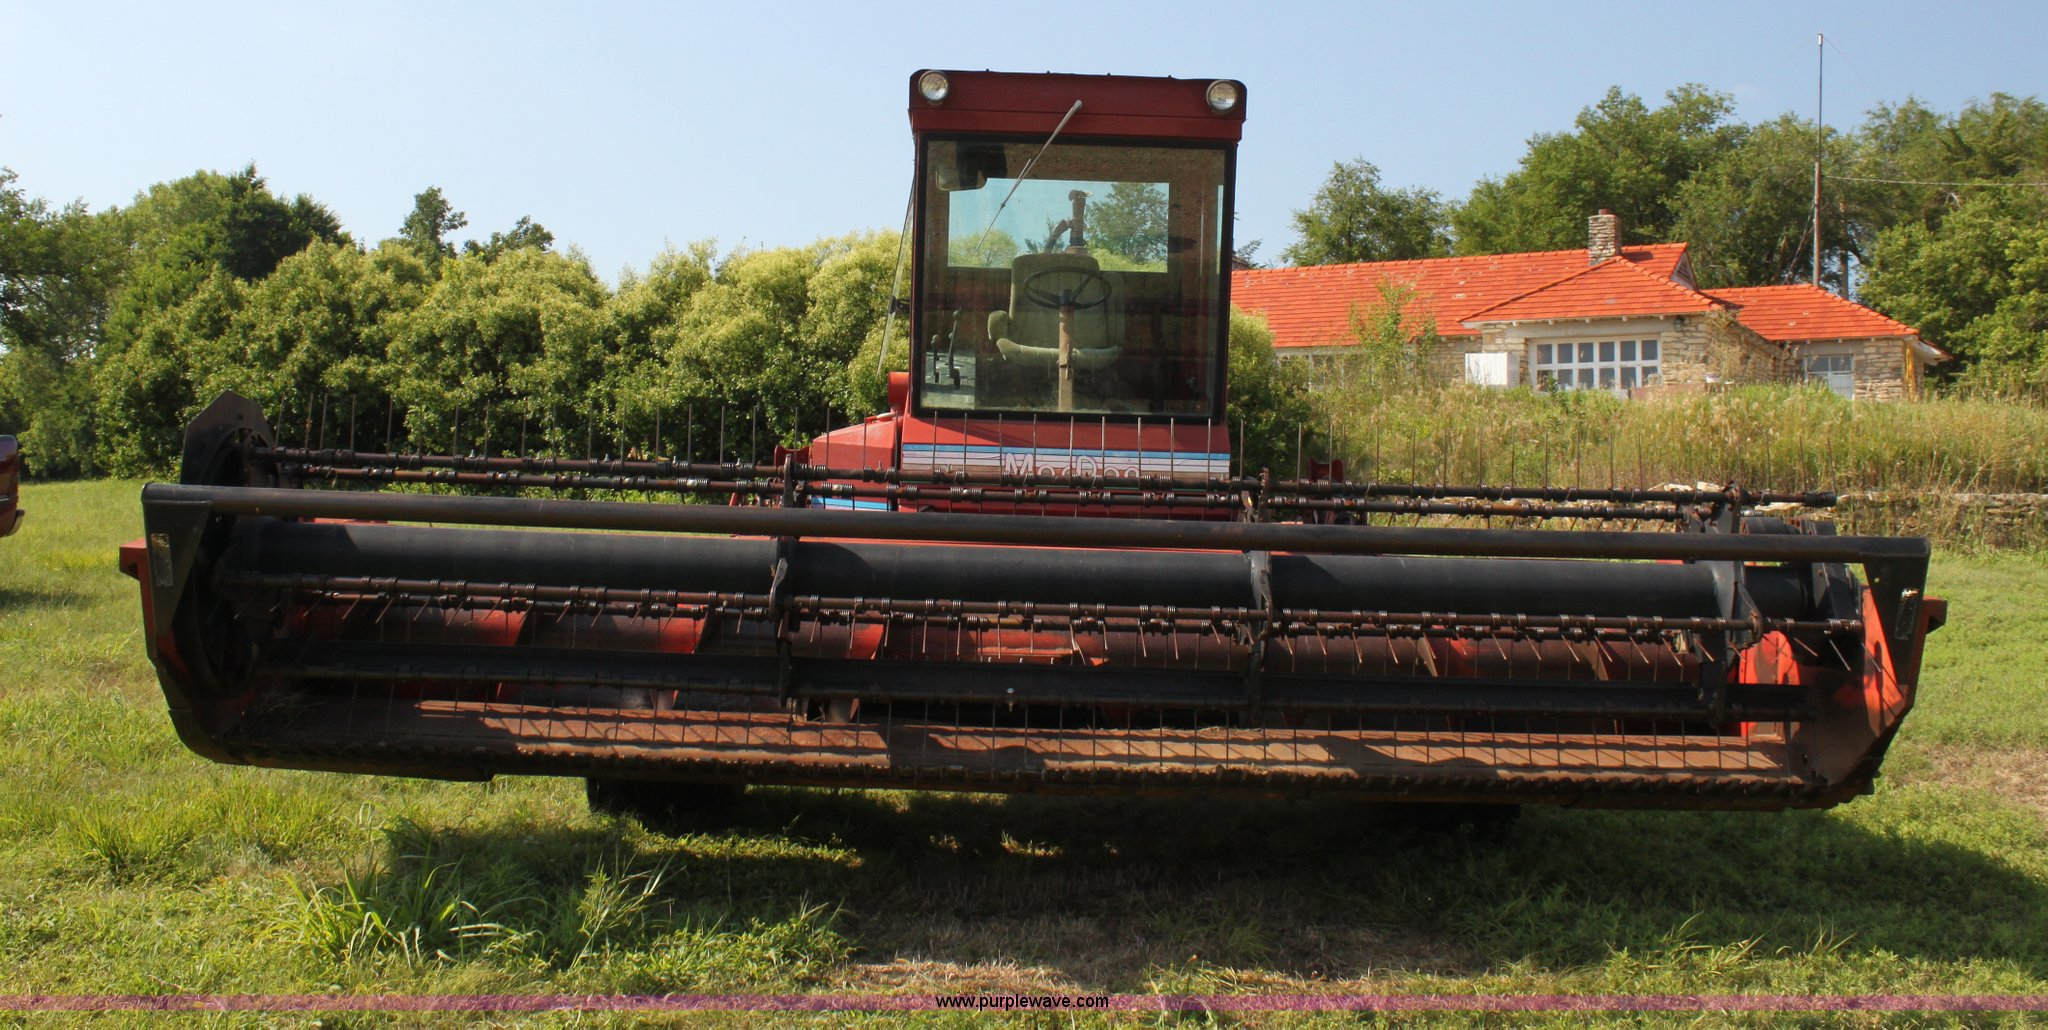 1990 MacDon 7000 self-propelled swather | Item G4030 | SOLD!